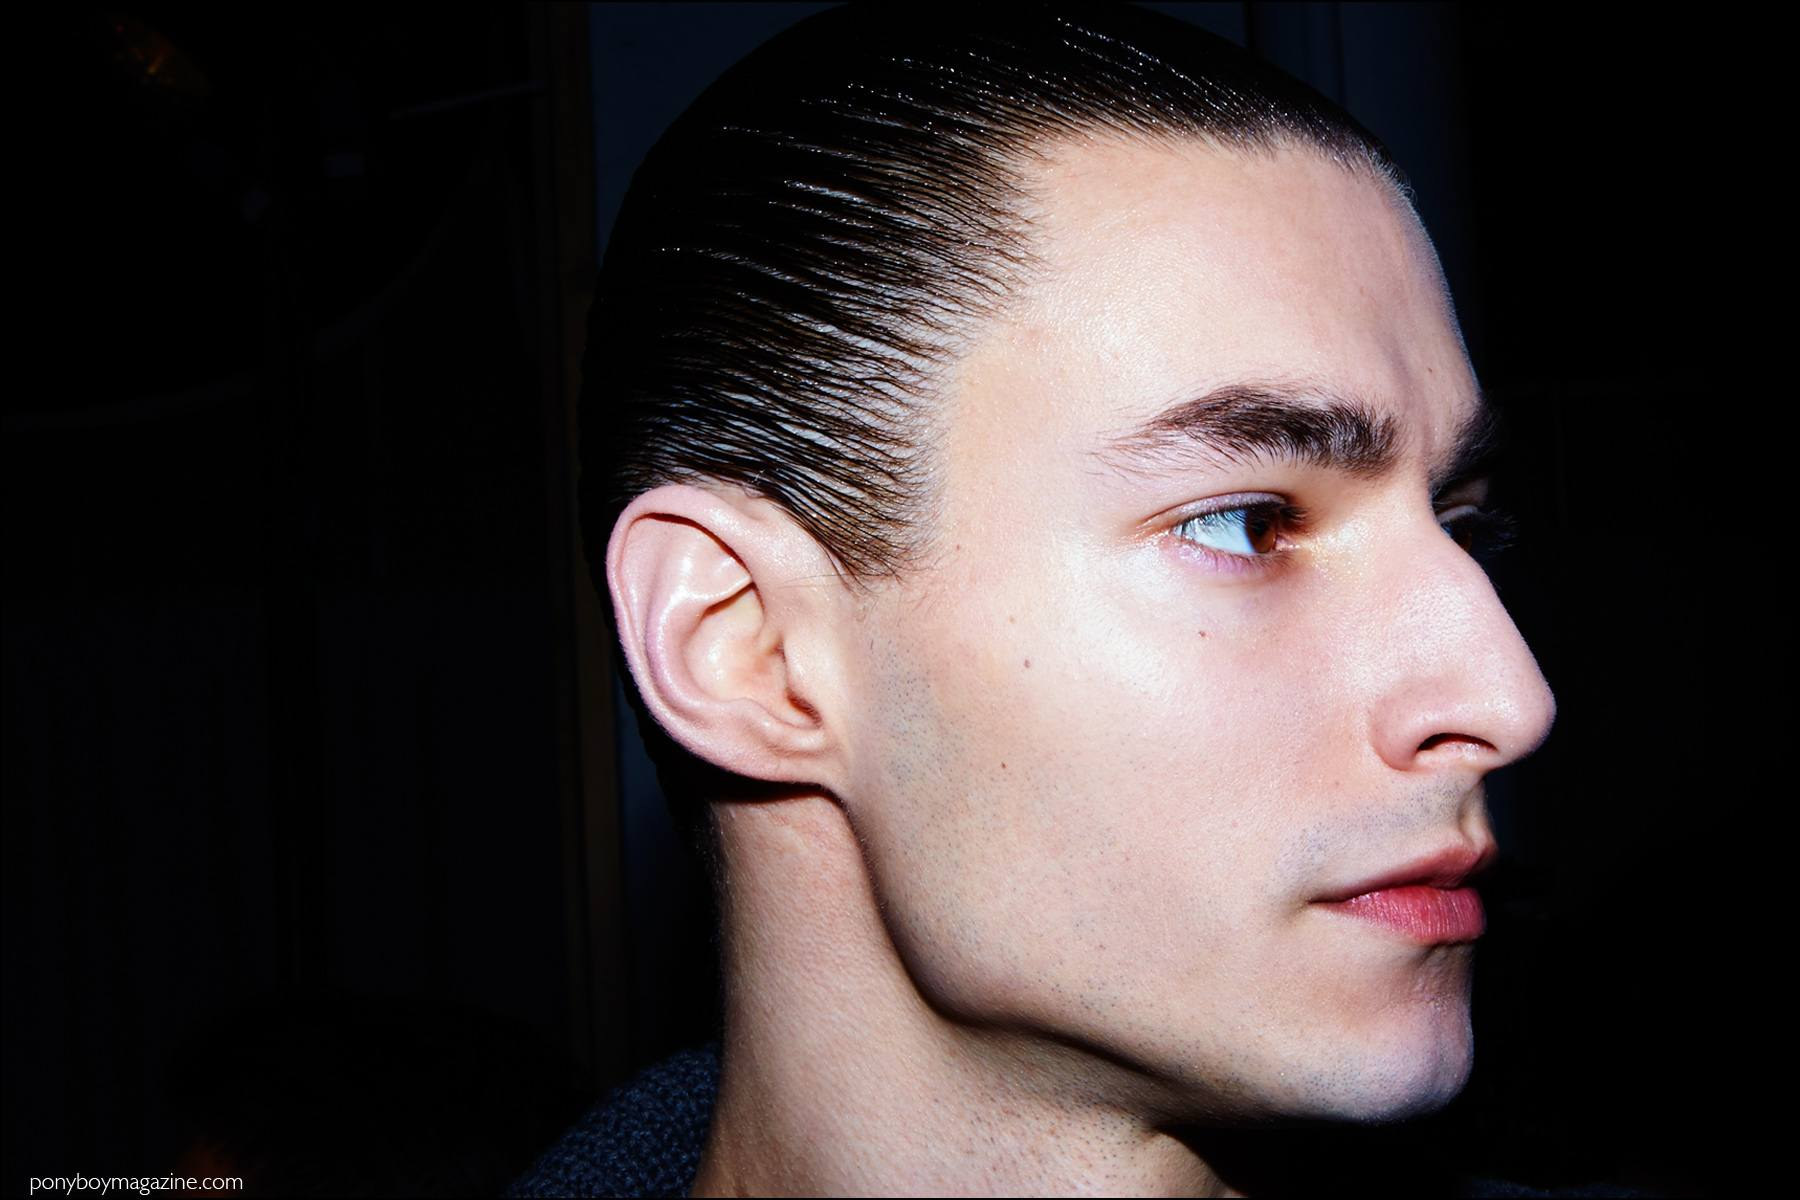 Slicked back hairstyles at Robert Geller F/W16 menswear show. Photography by Alexander Thompson for Ponyboy magazine NY.